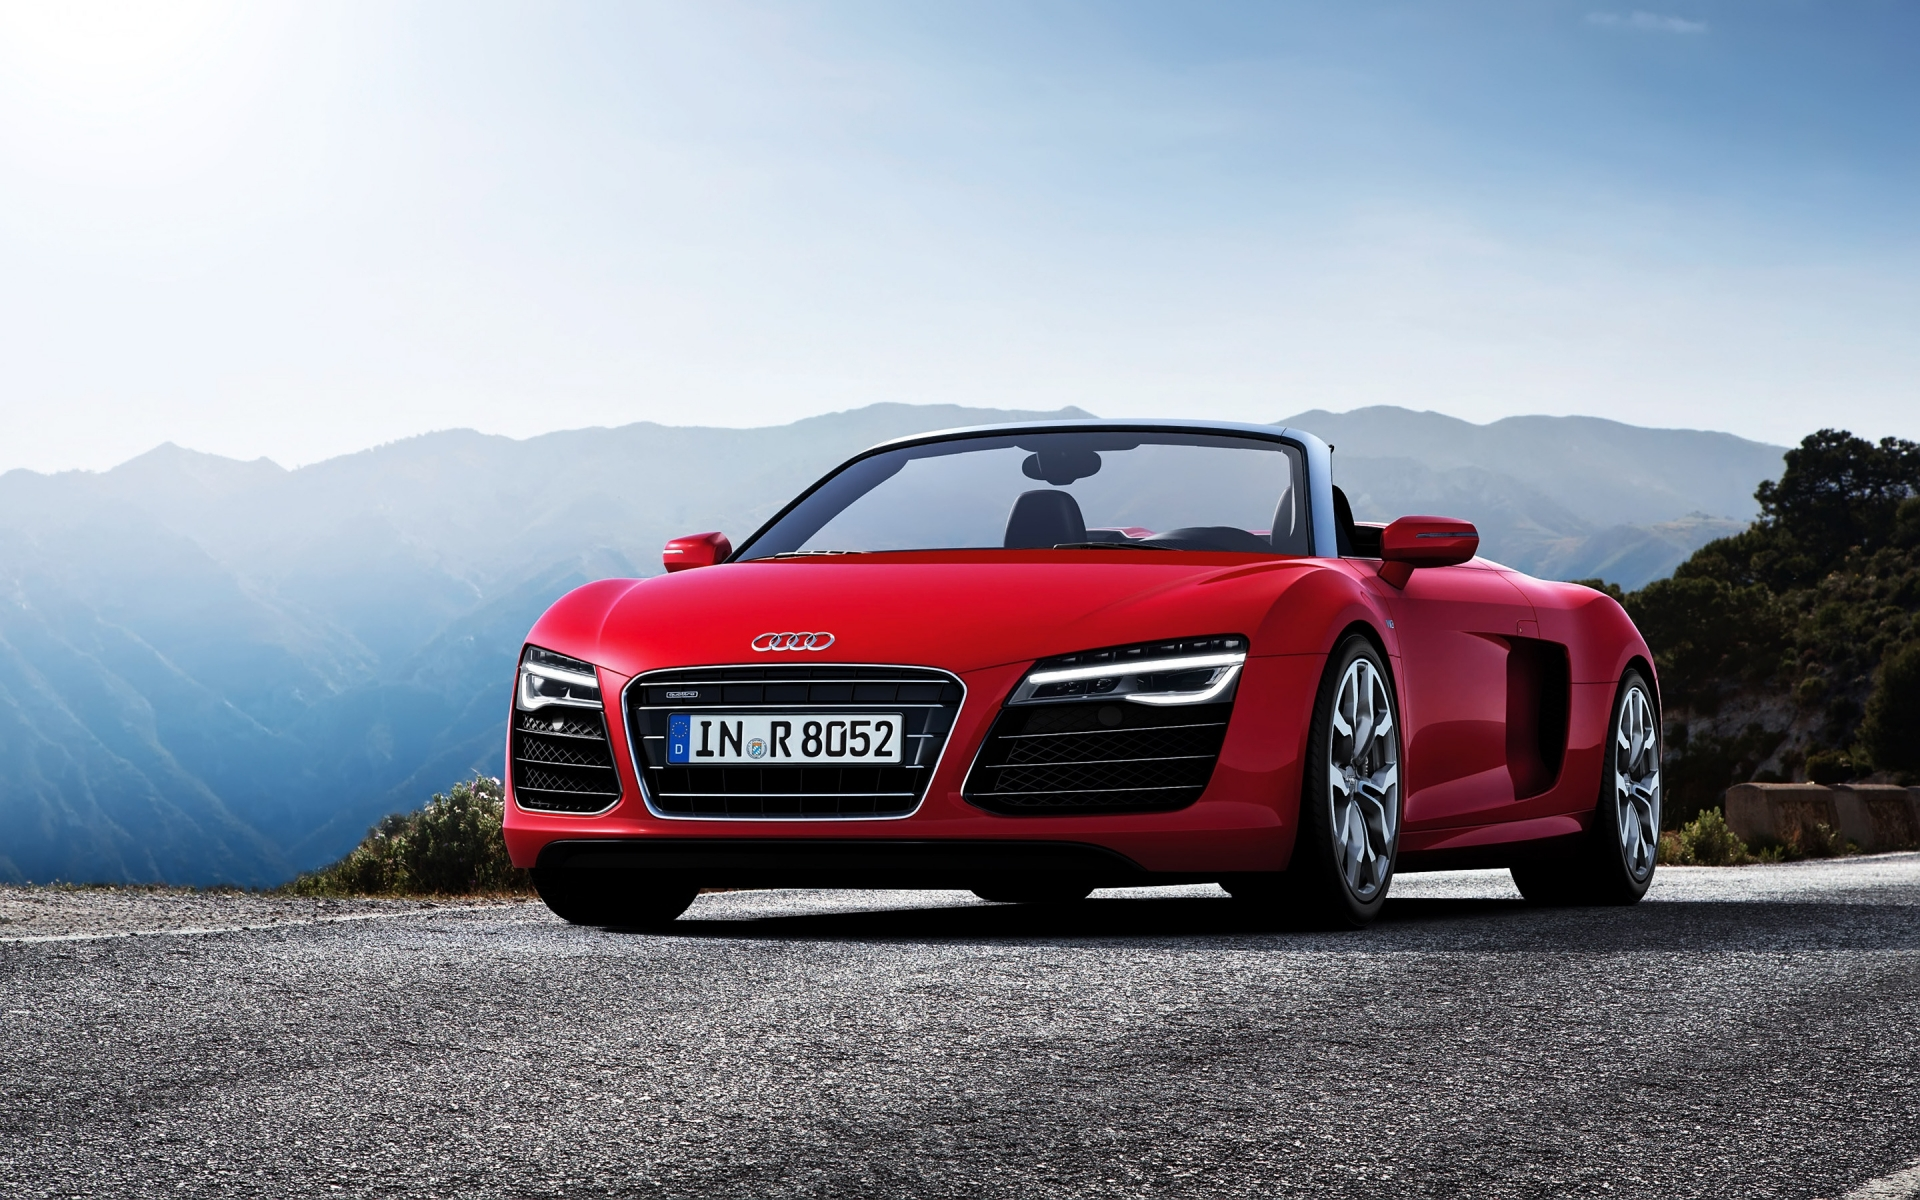 2013 Audi R8 Spyder for 1920 x 1200 widescreen resolution